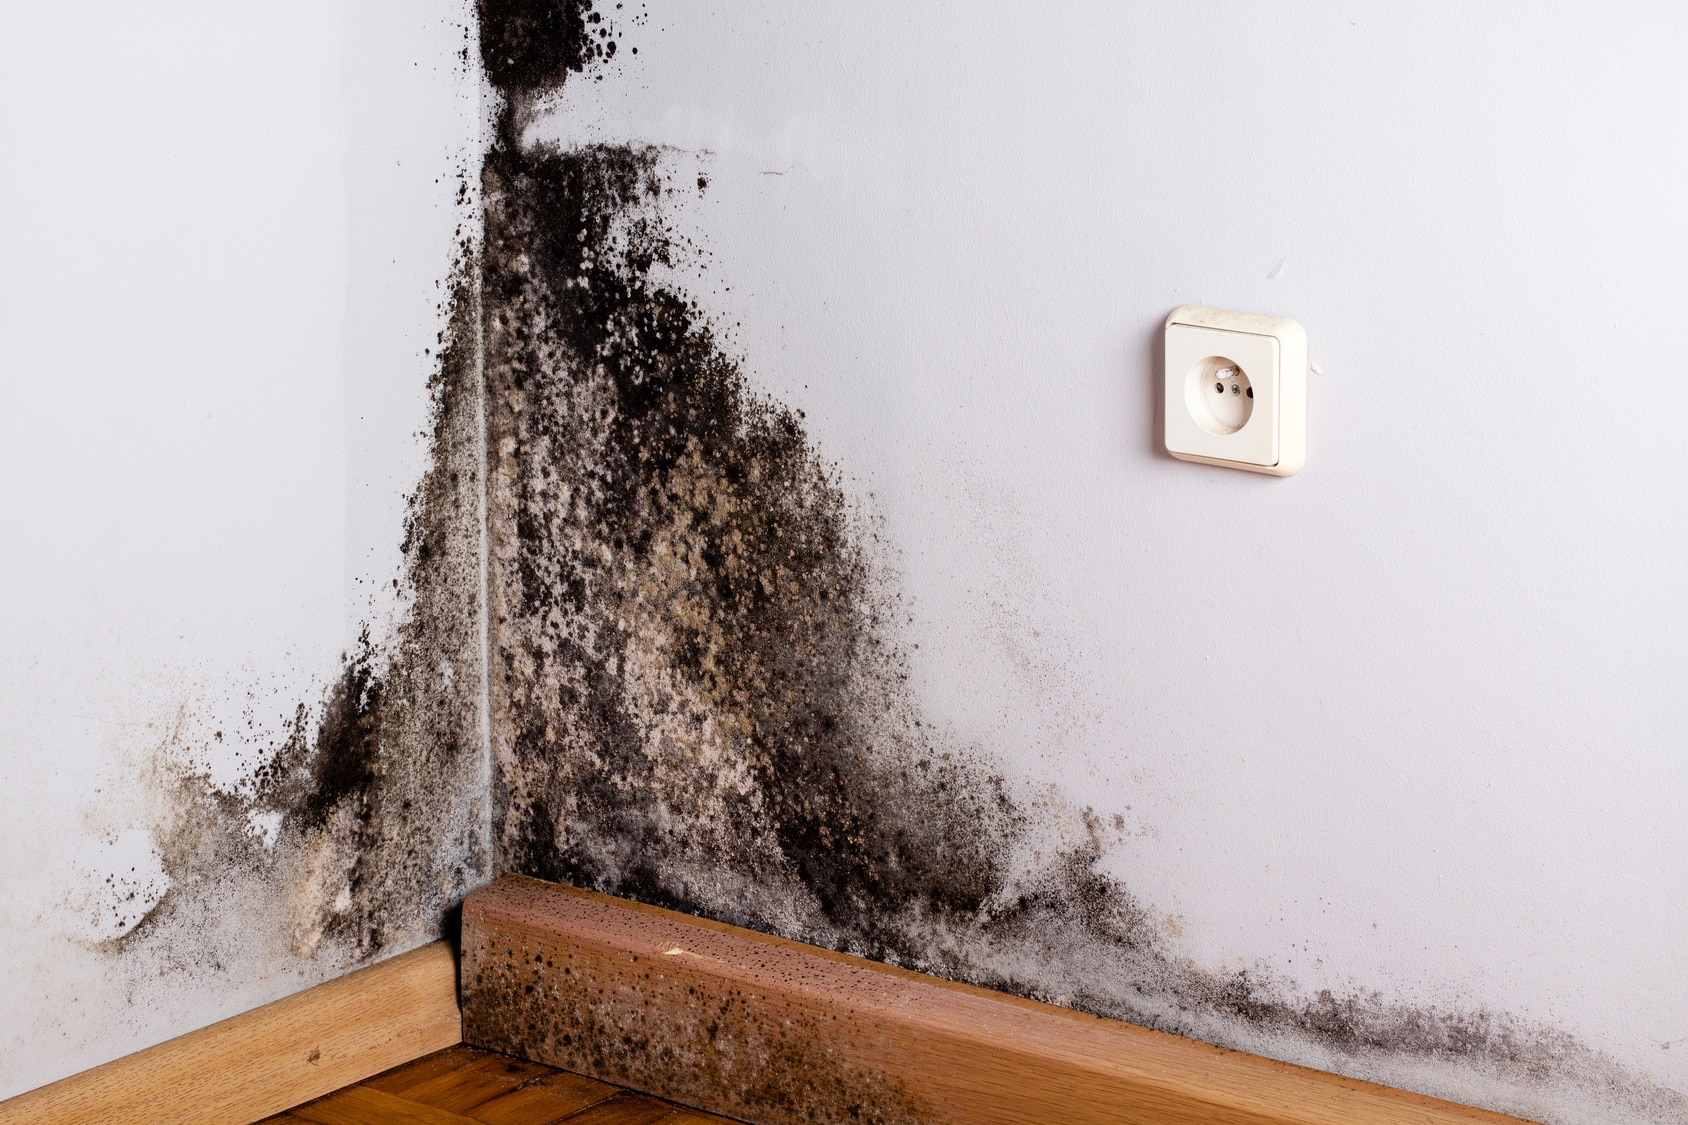 mold & real estate sales